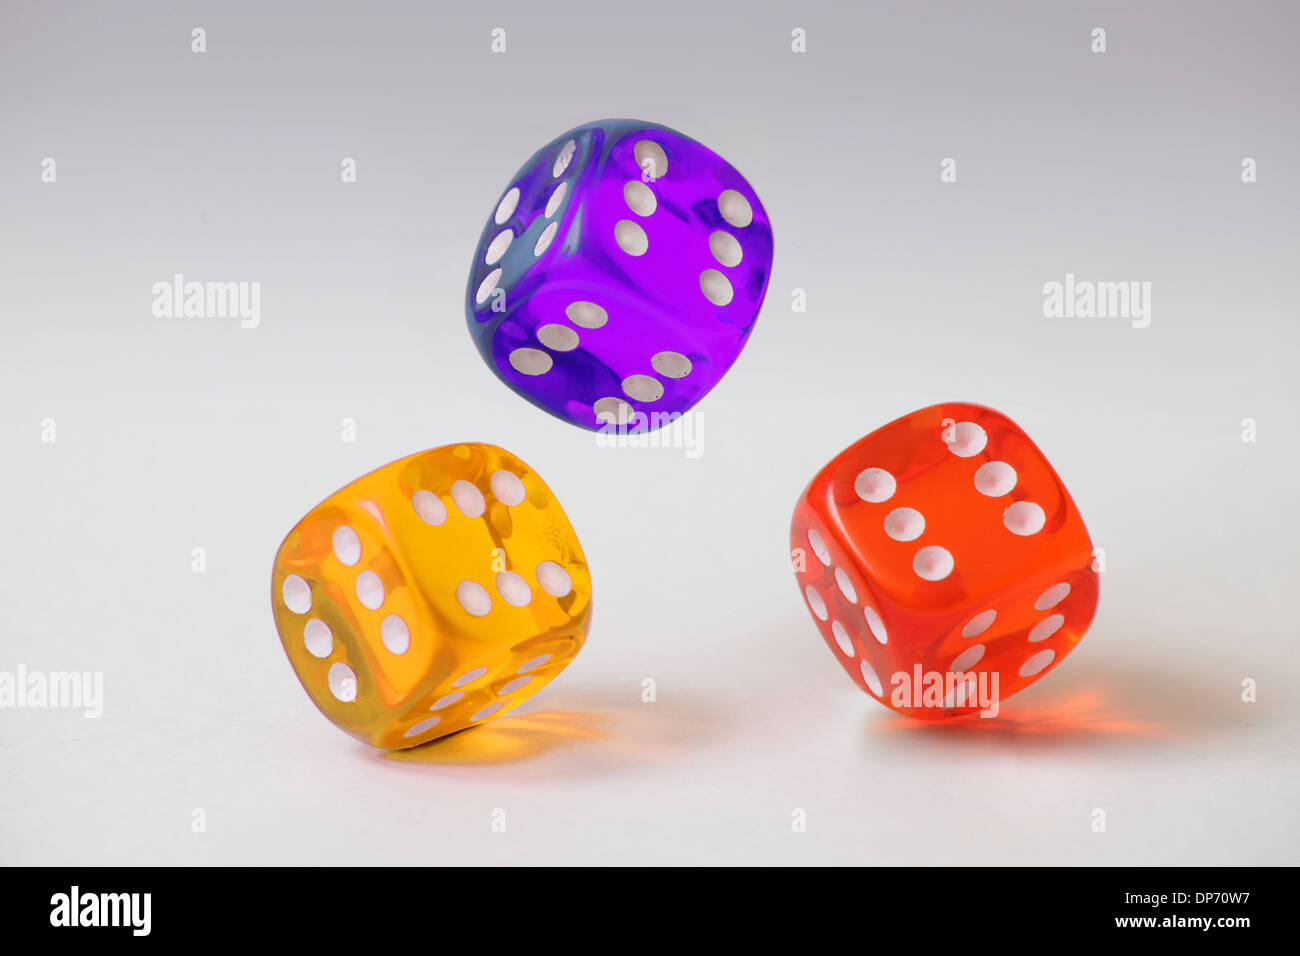 Three clear plastic dice with a six on every face tumbling on a plain white background - Stock Image